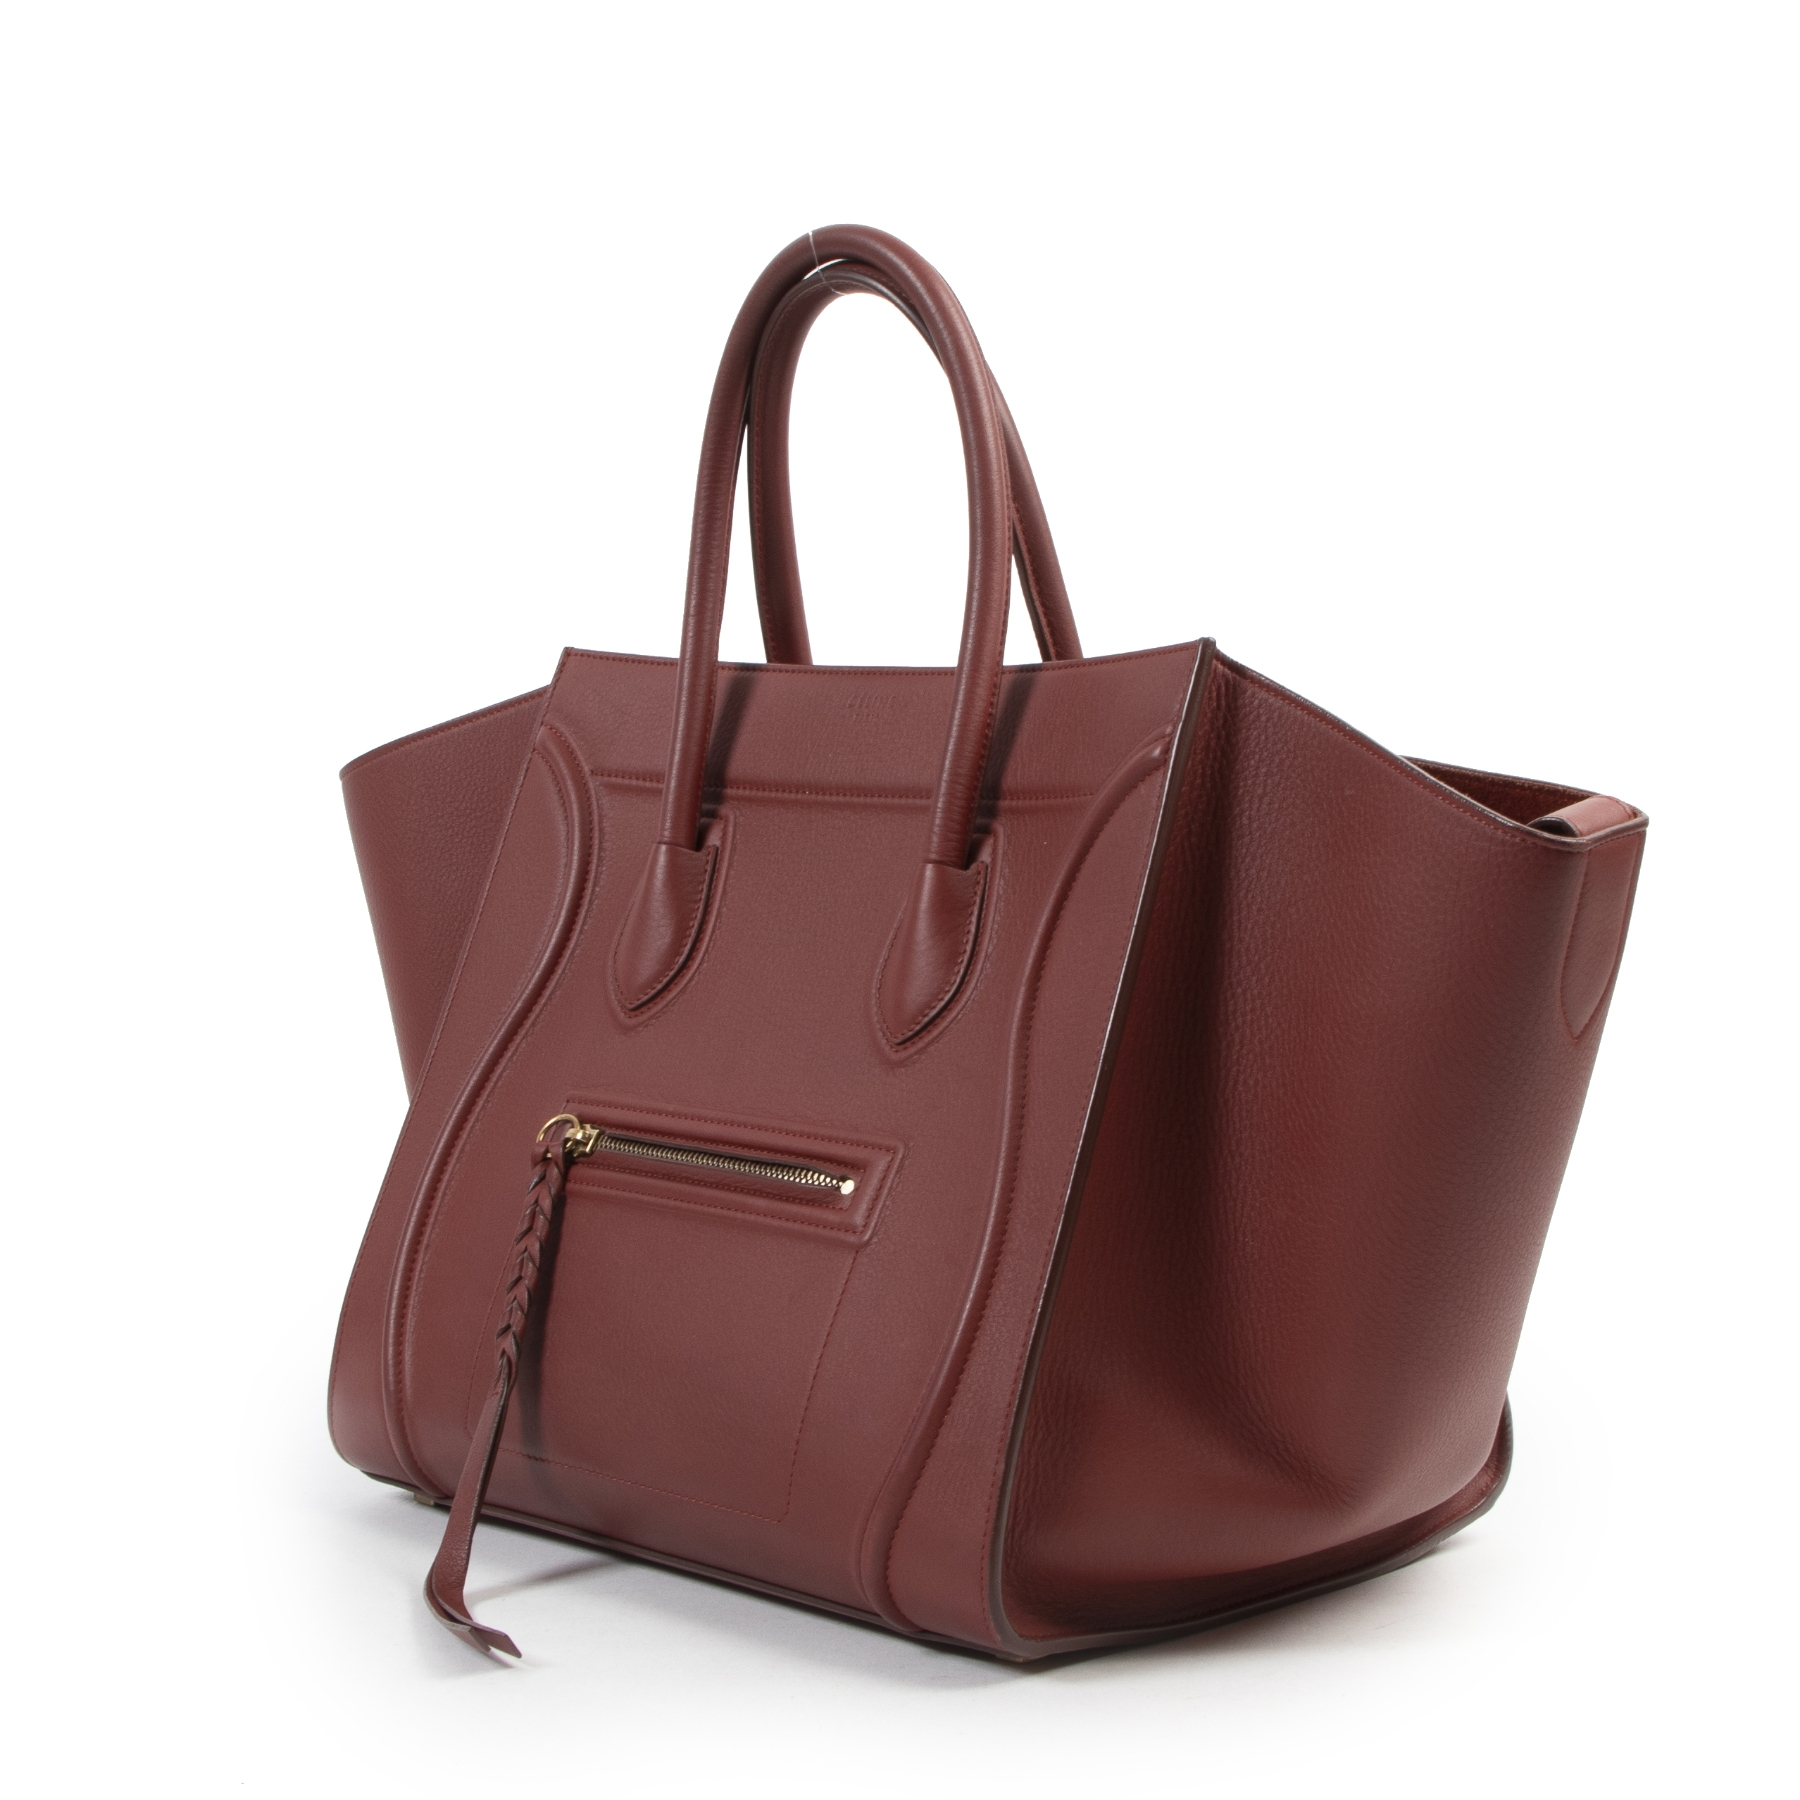 Authentieke tweedehands Celine te koop bij LabelLOV Celine Merlot Red Phantom Luggage Bag